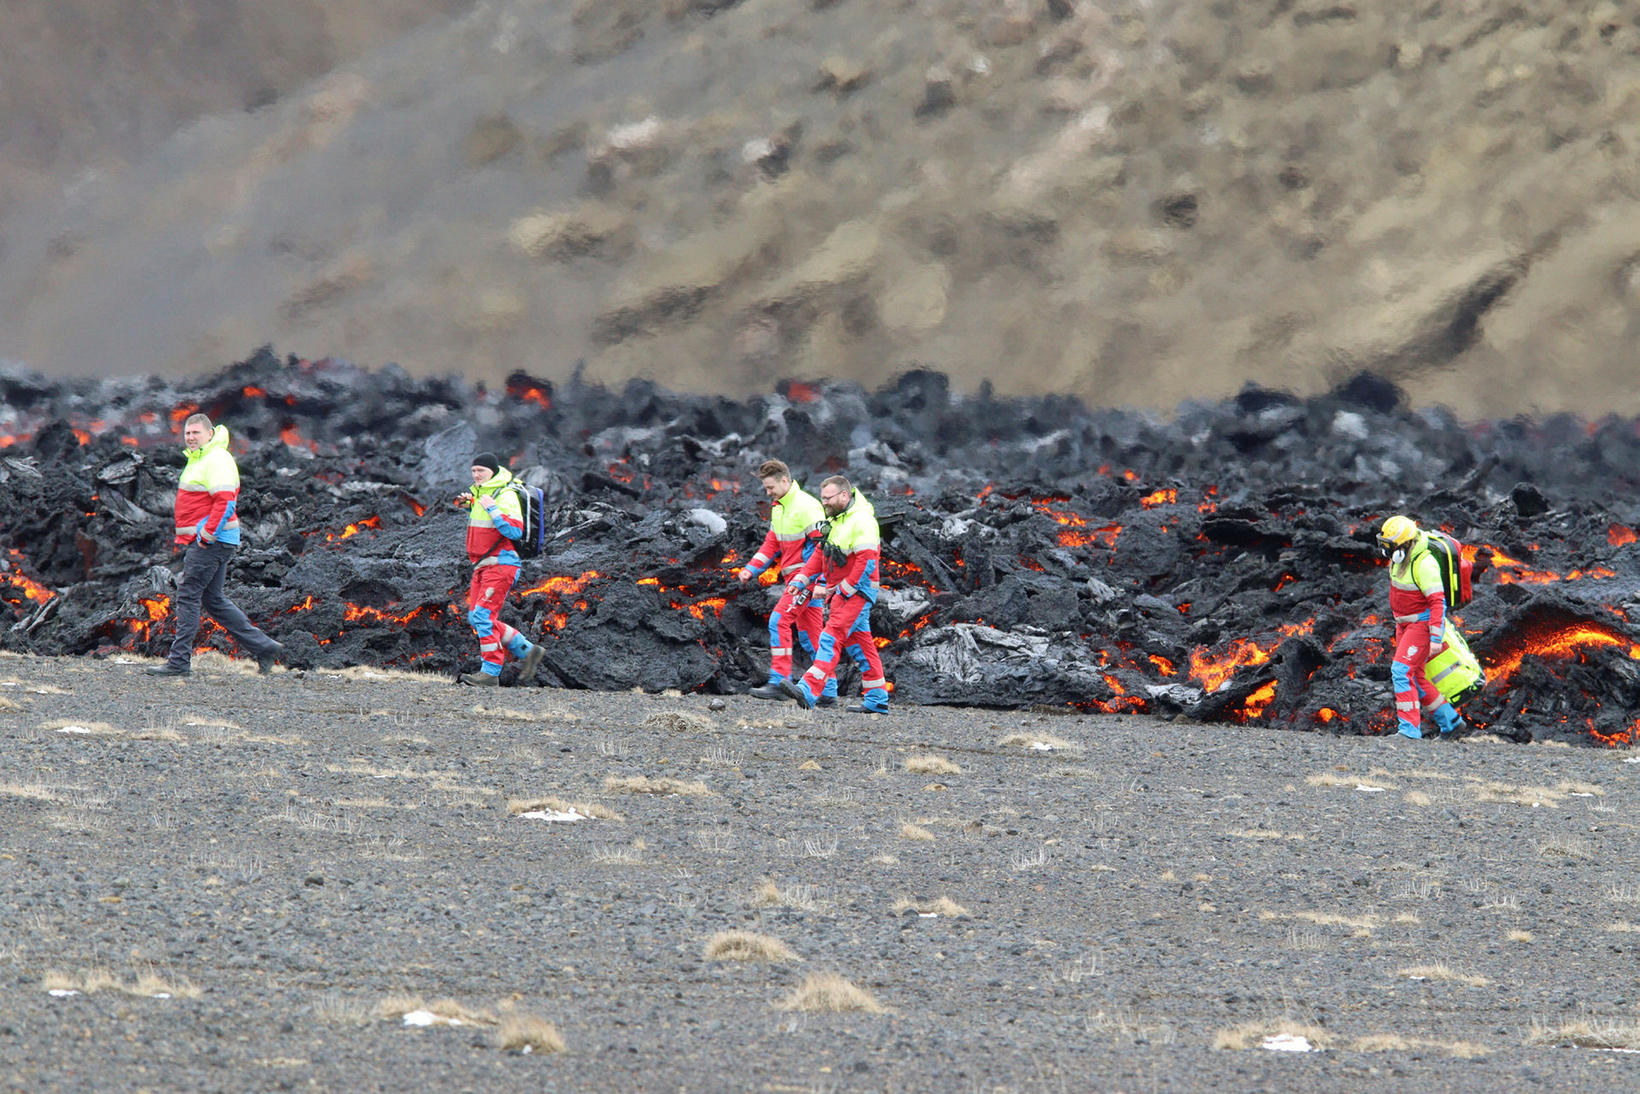 Rescue workers have monitored the area since the eruption started …